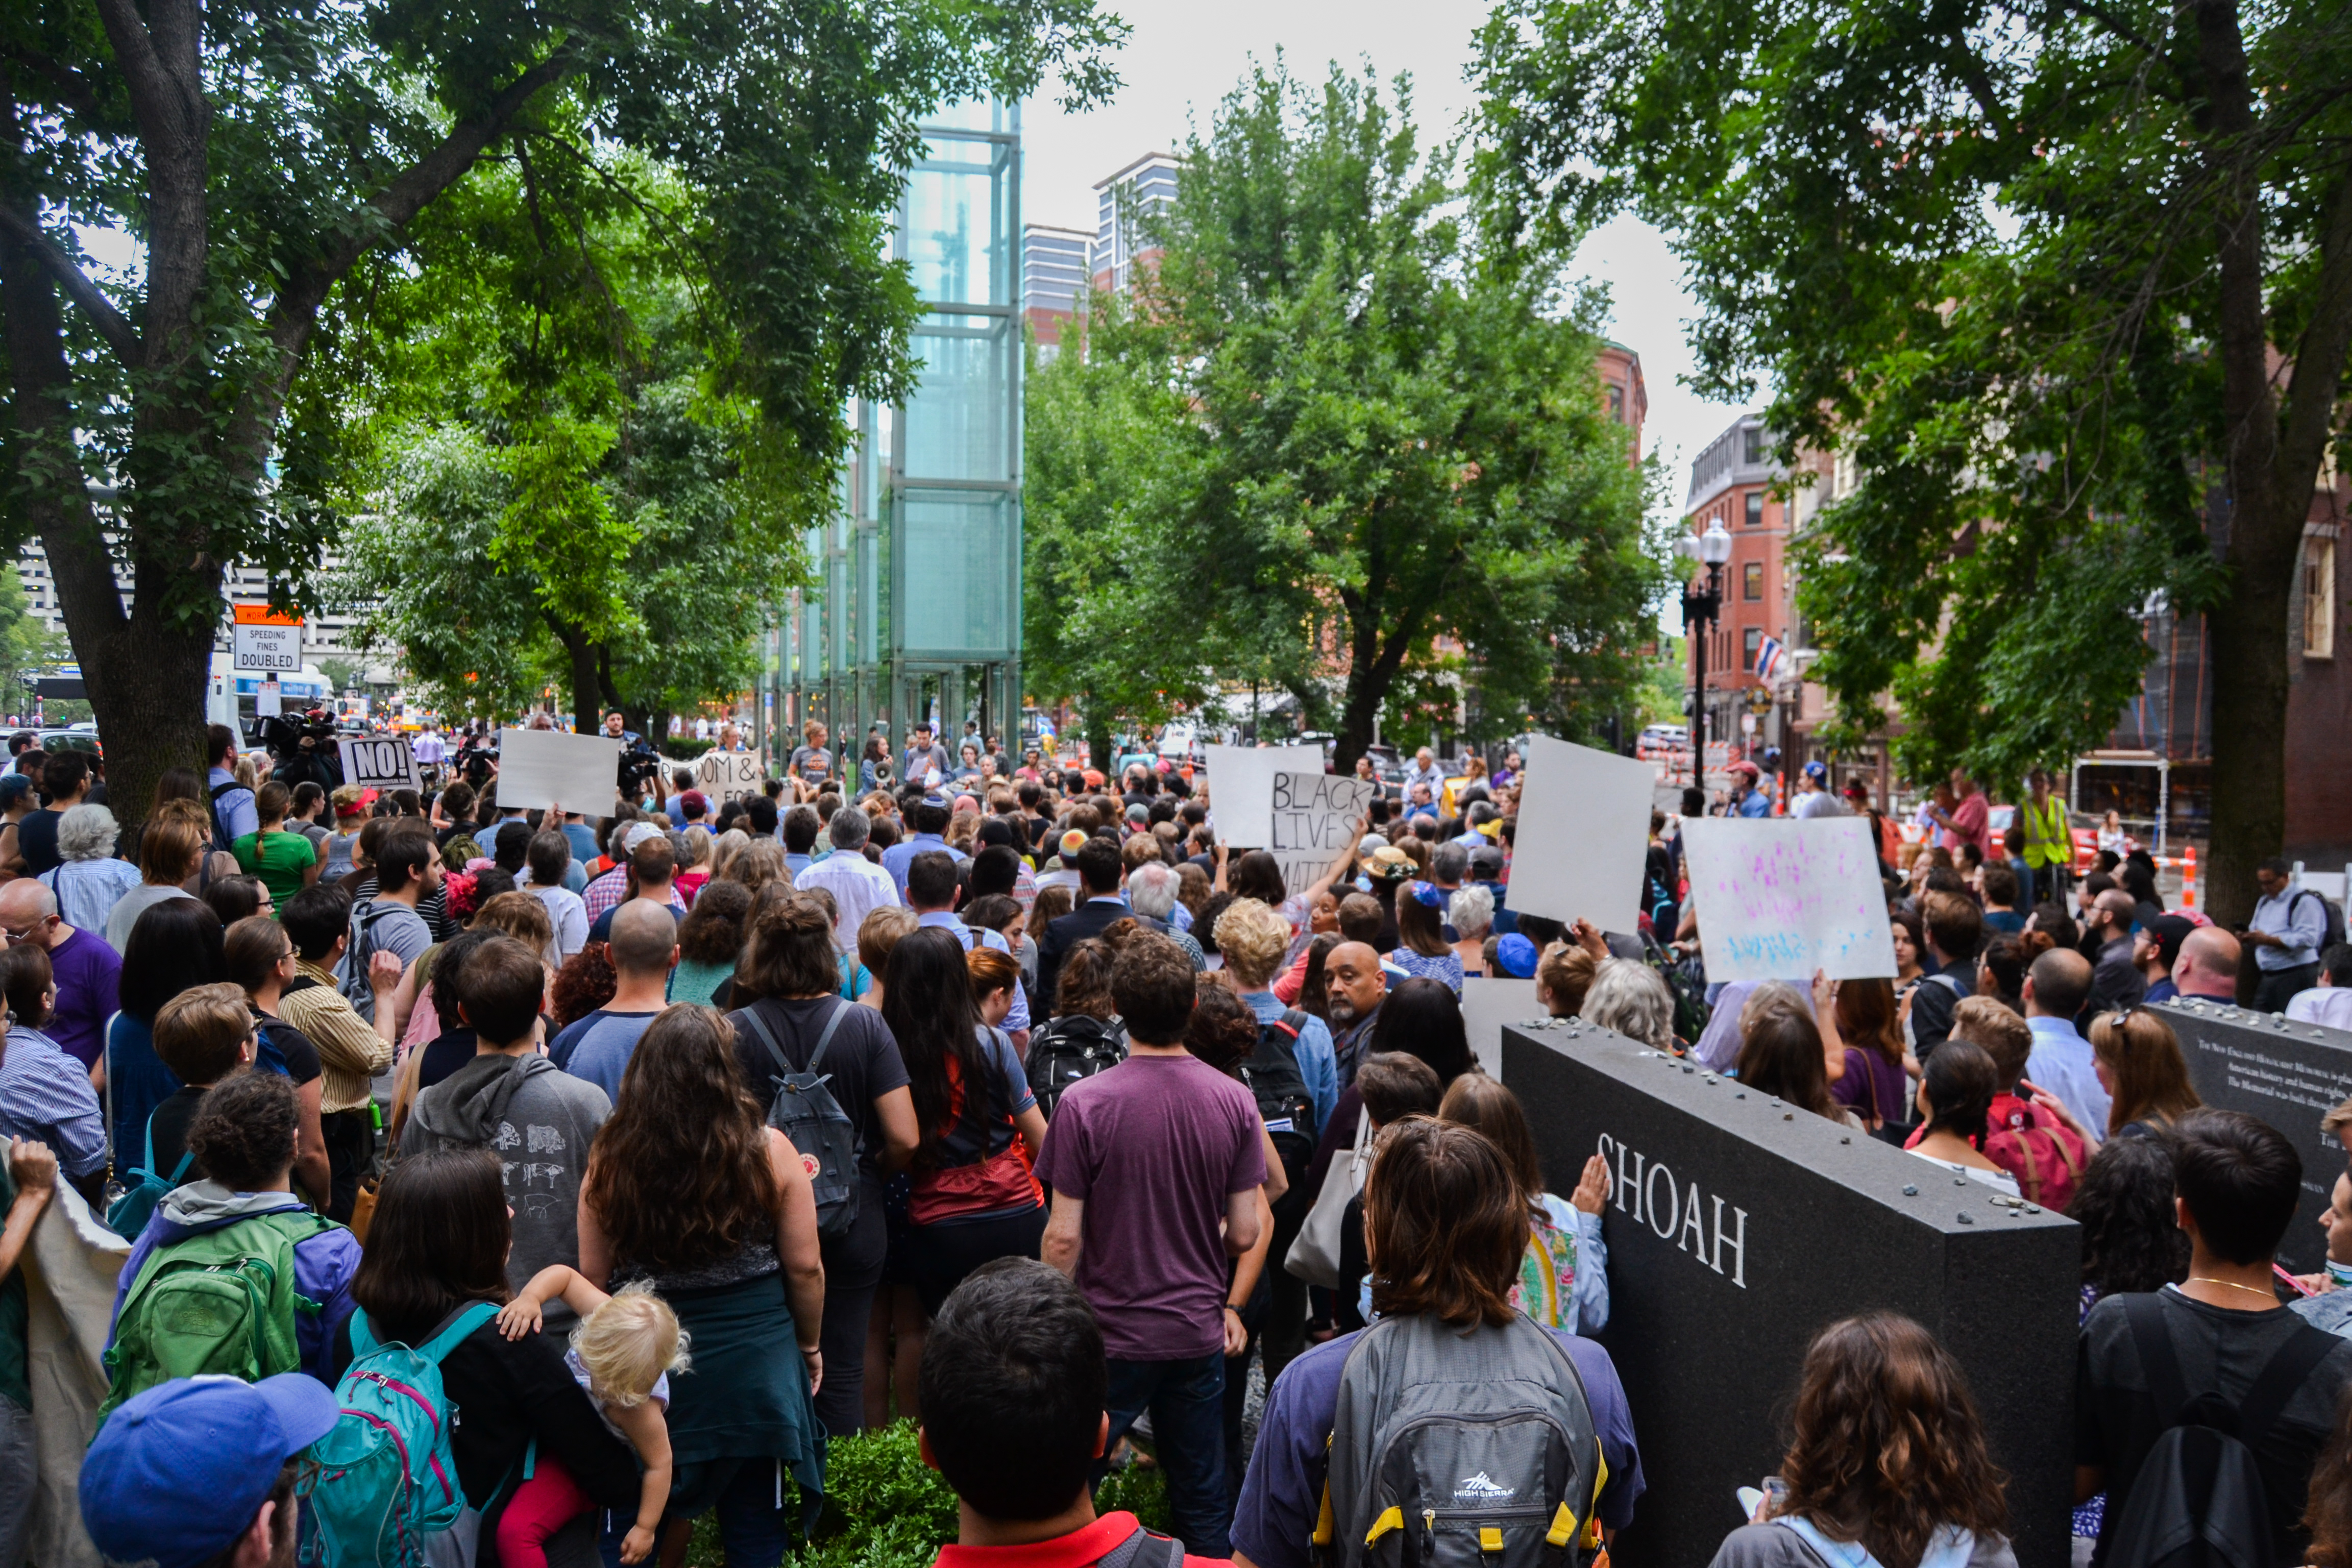 PHOTOS: 500+ young Jews in Boston rally against white supremacy